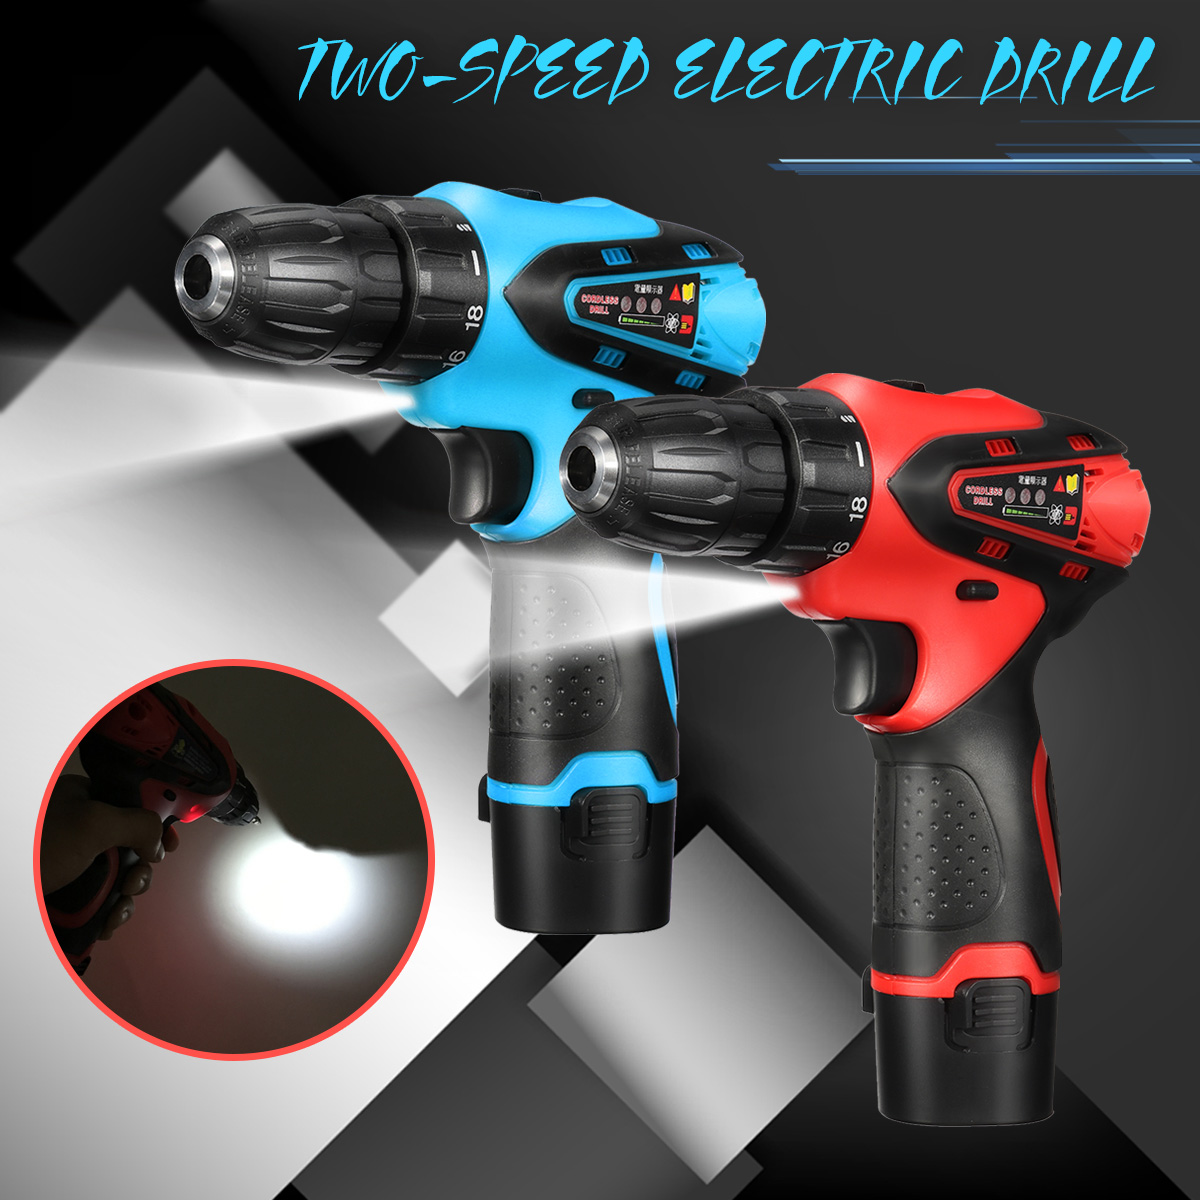 12V 680W Multipurpose Screwdriver 2 Speed Electric Drill Rechargeable Lithium Battery Electric screwdriver Power Tools free shipping brand proskit upt 32007d frequency modulated electric screwdriver 2 electric screwdriver bit 900 1300rpm tools